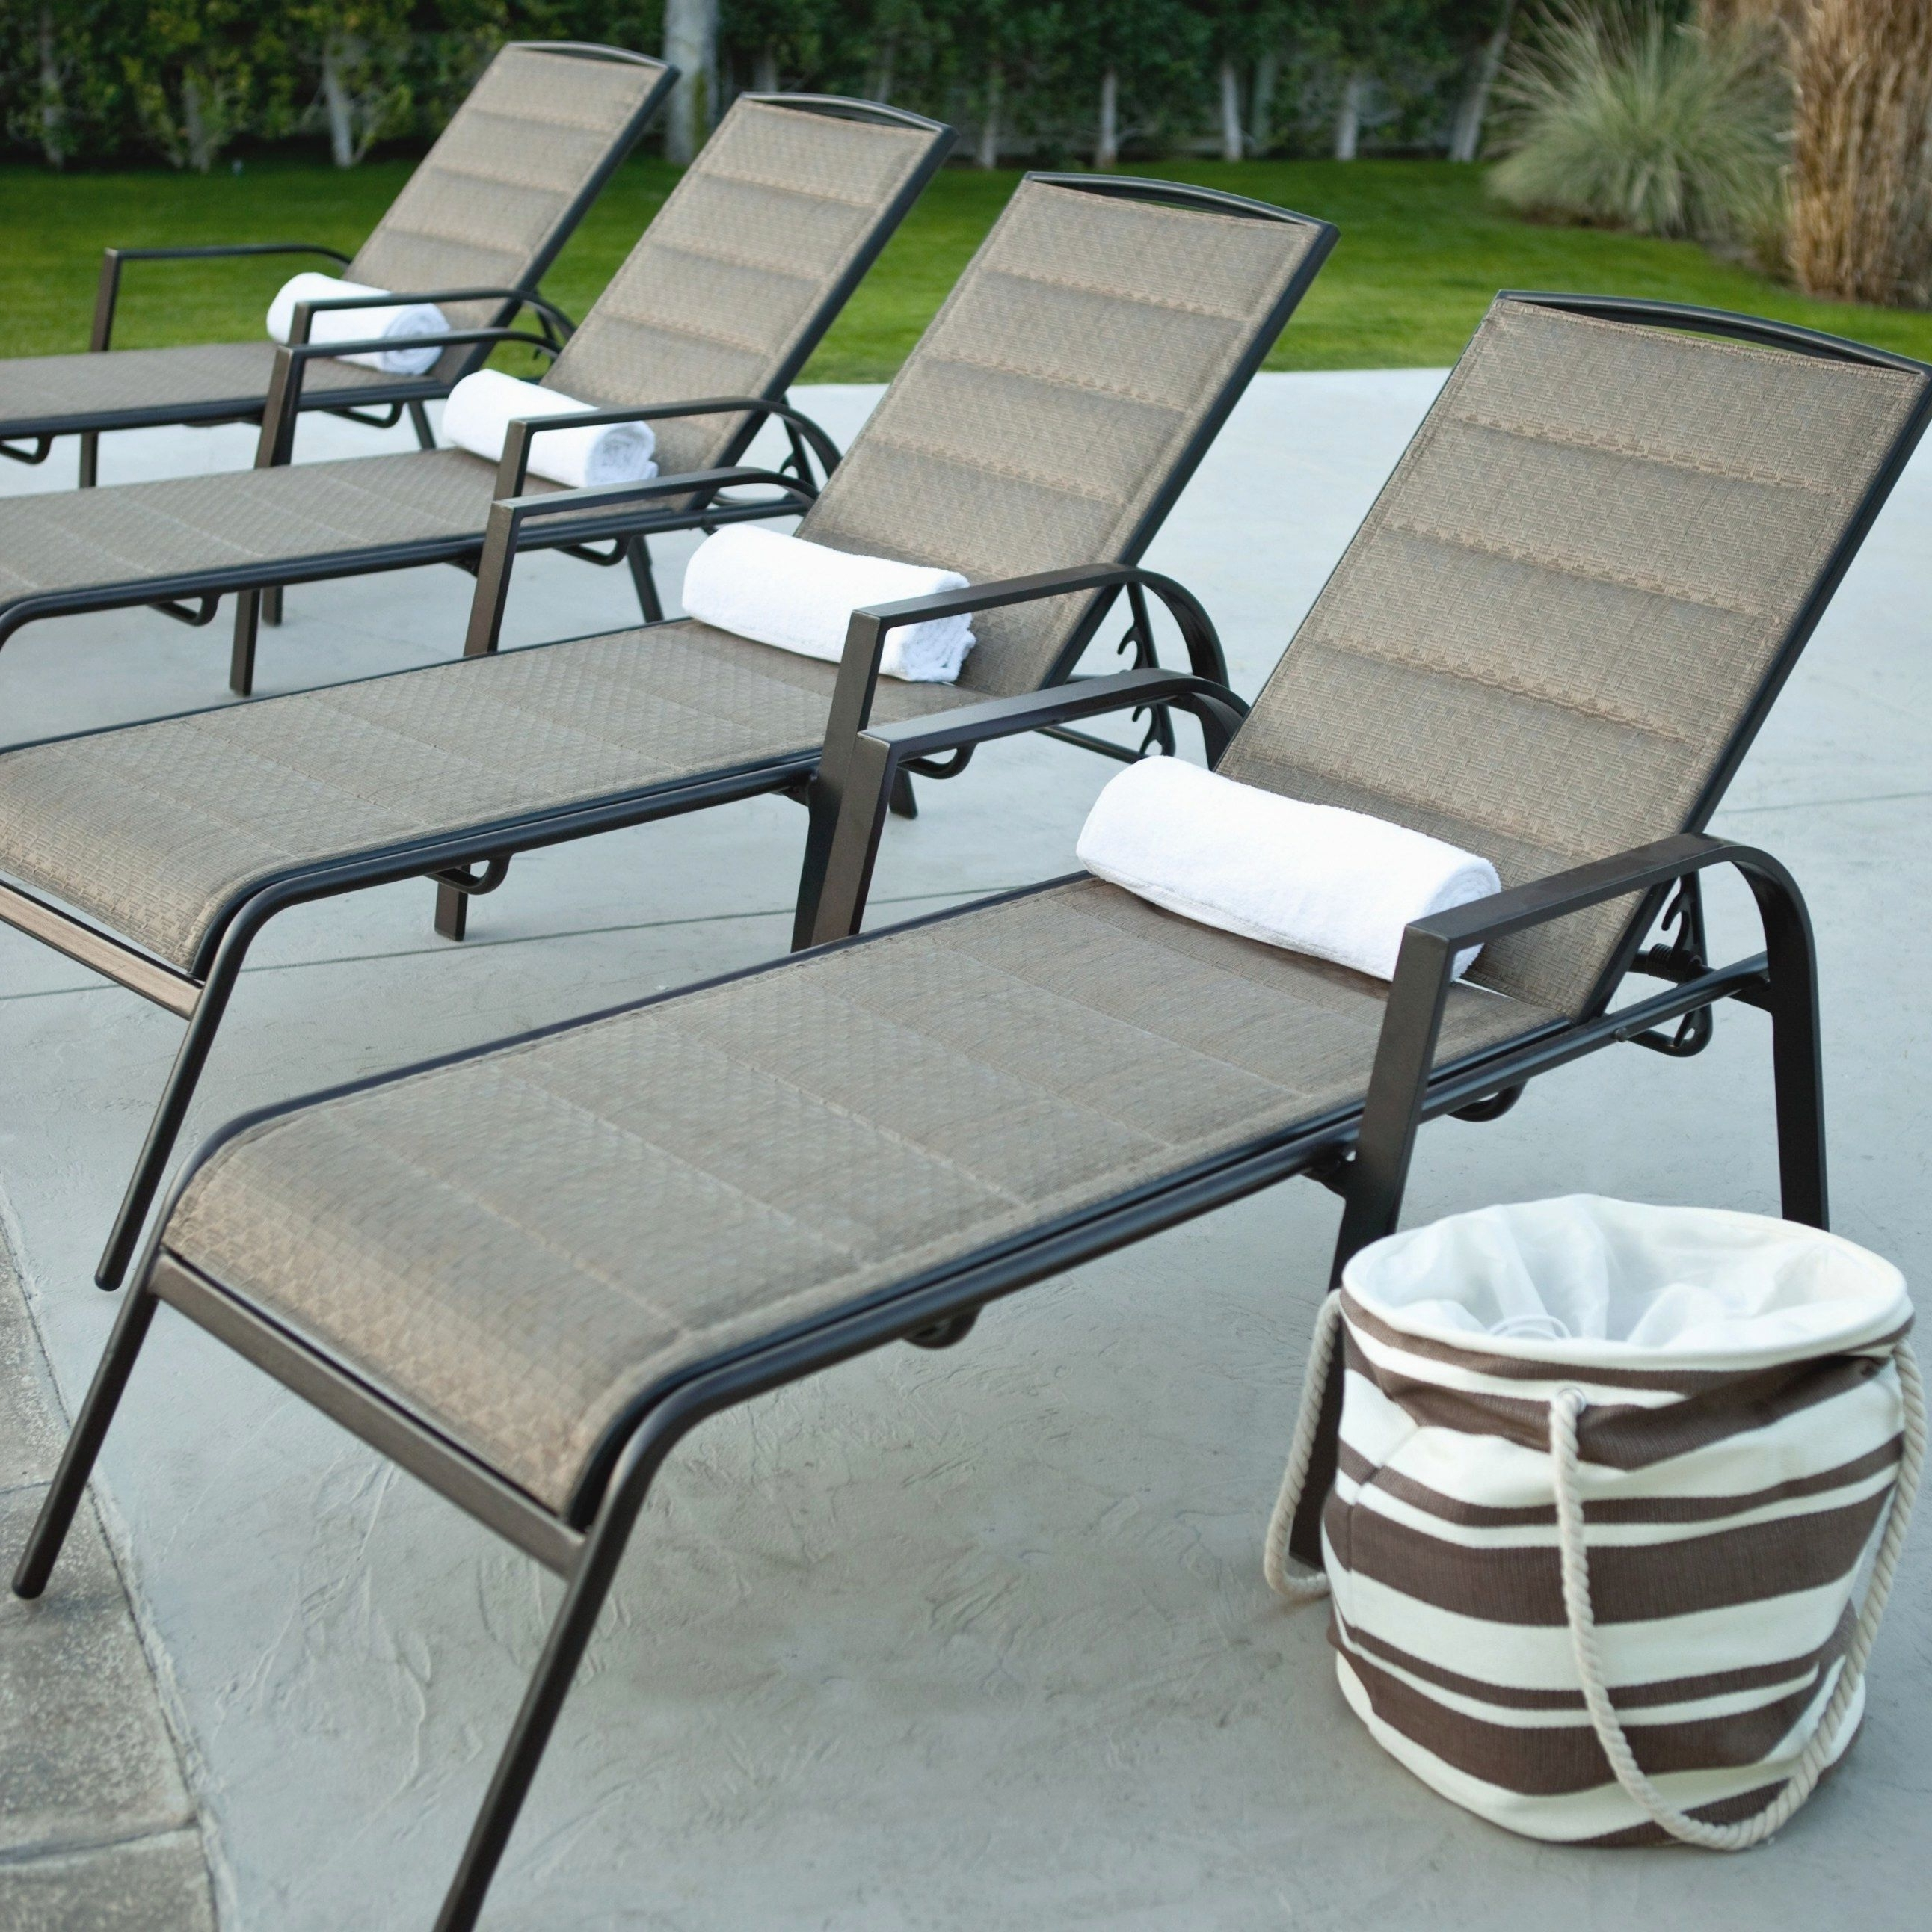 Most Popular Outdoor Chaise Lounge Chairs Under 100 Modern Fresh Ideas Throughout Outdoor Mesh Chaise Lounge Chairs (View 13 of 15)